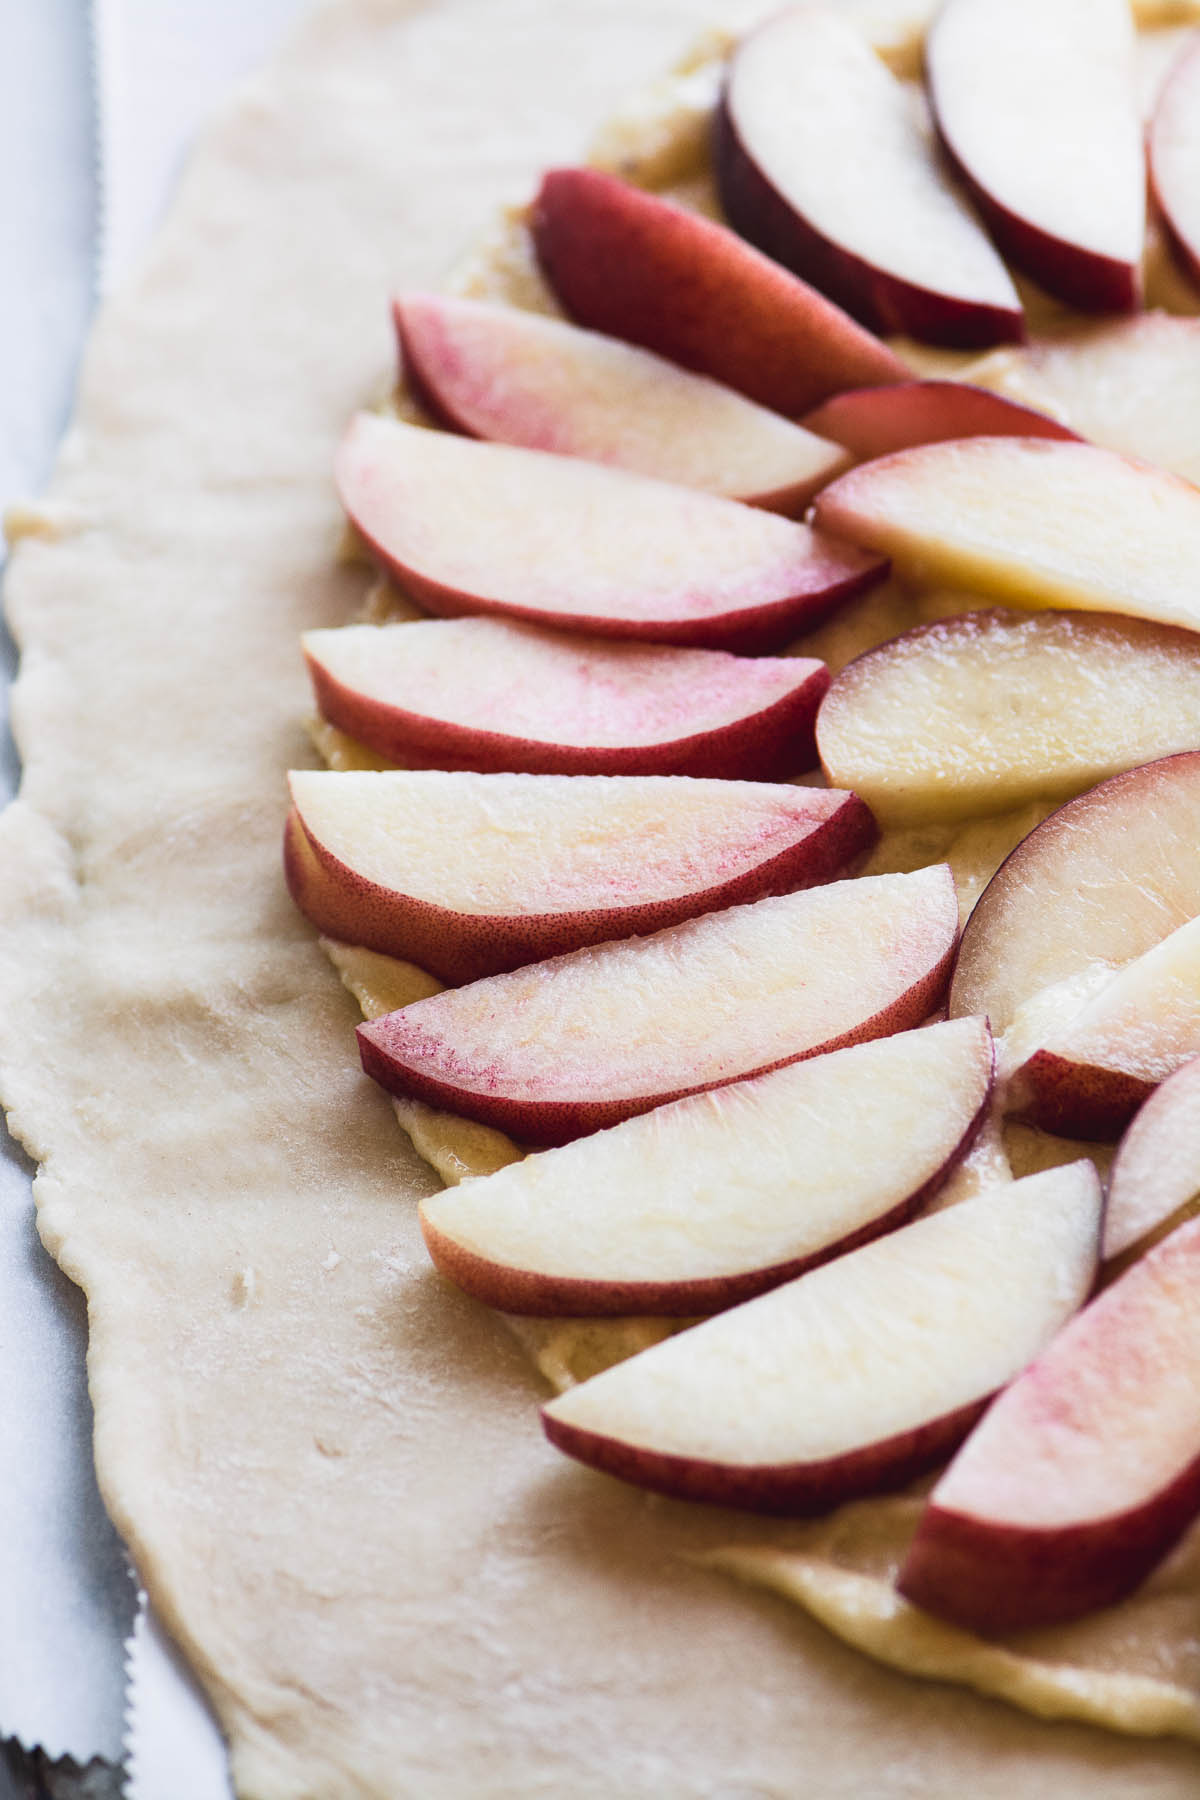 Sliced peaches on dough for White Peach Frangipane Galette